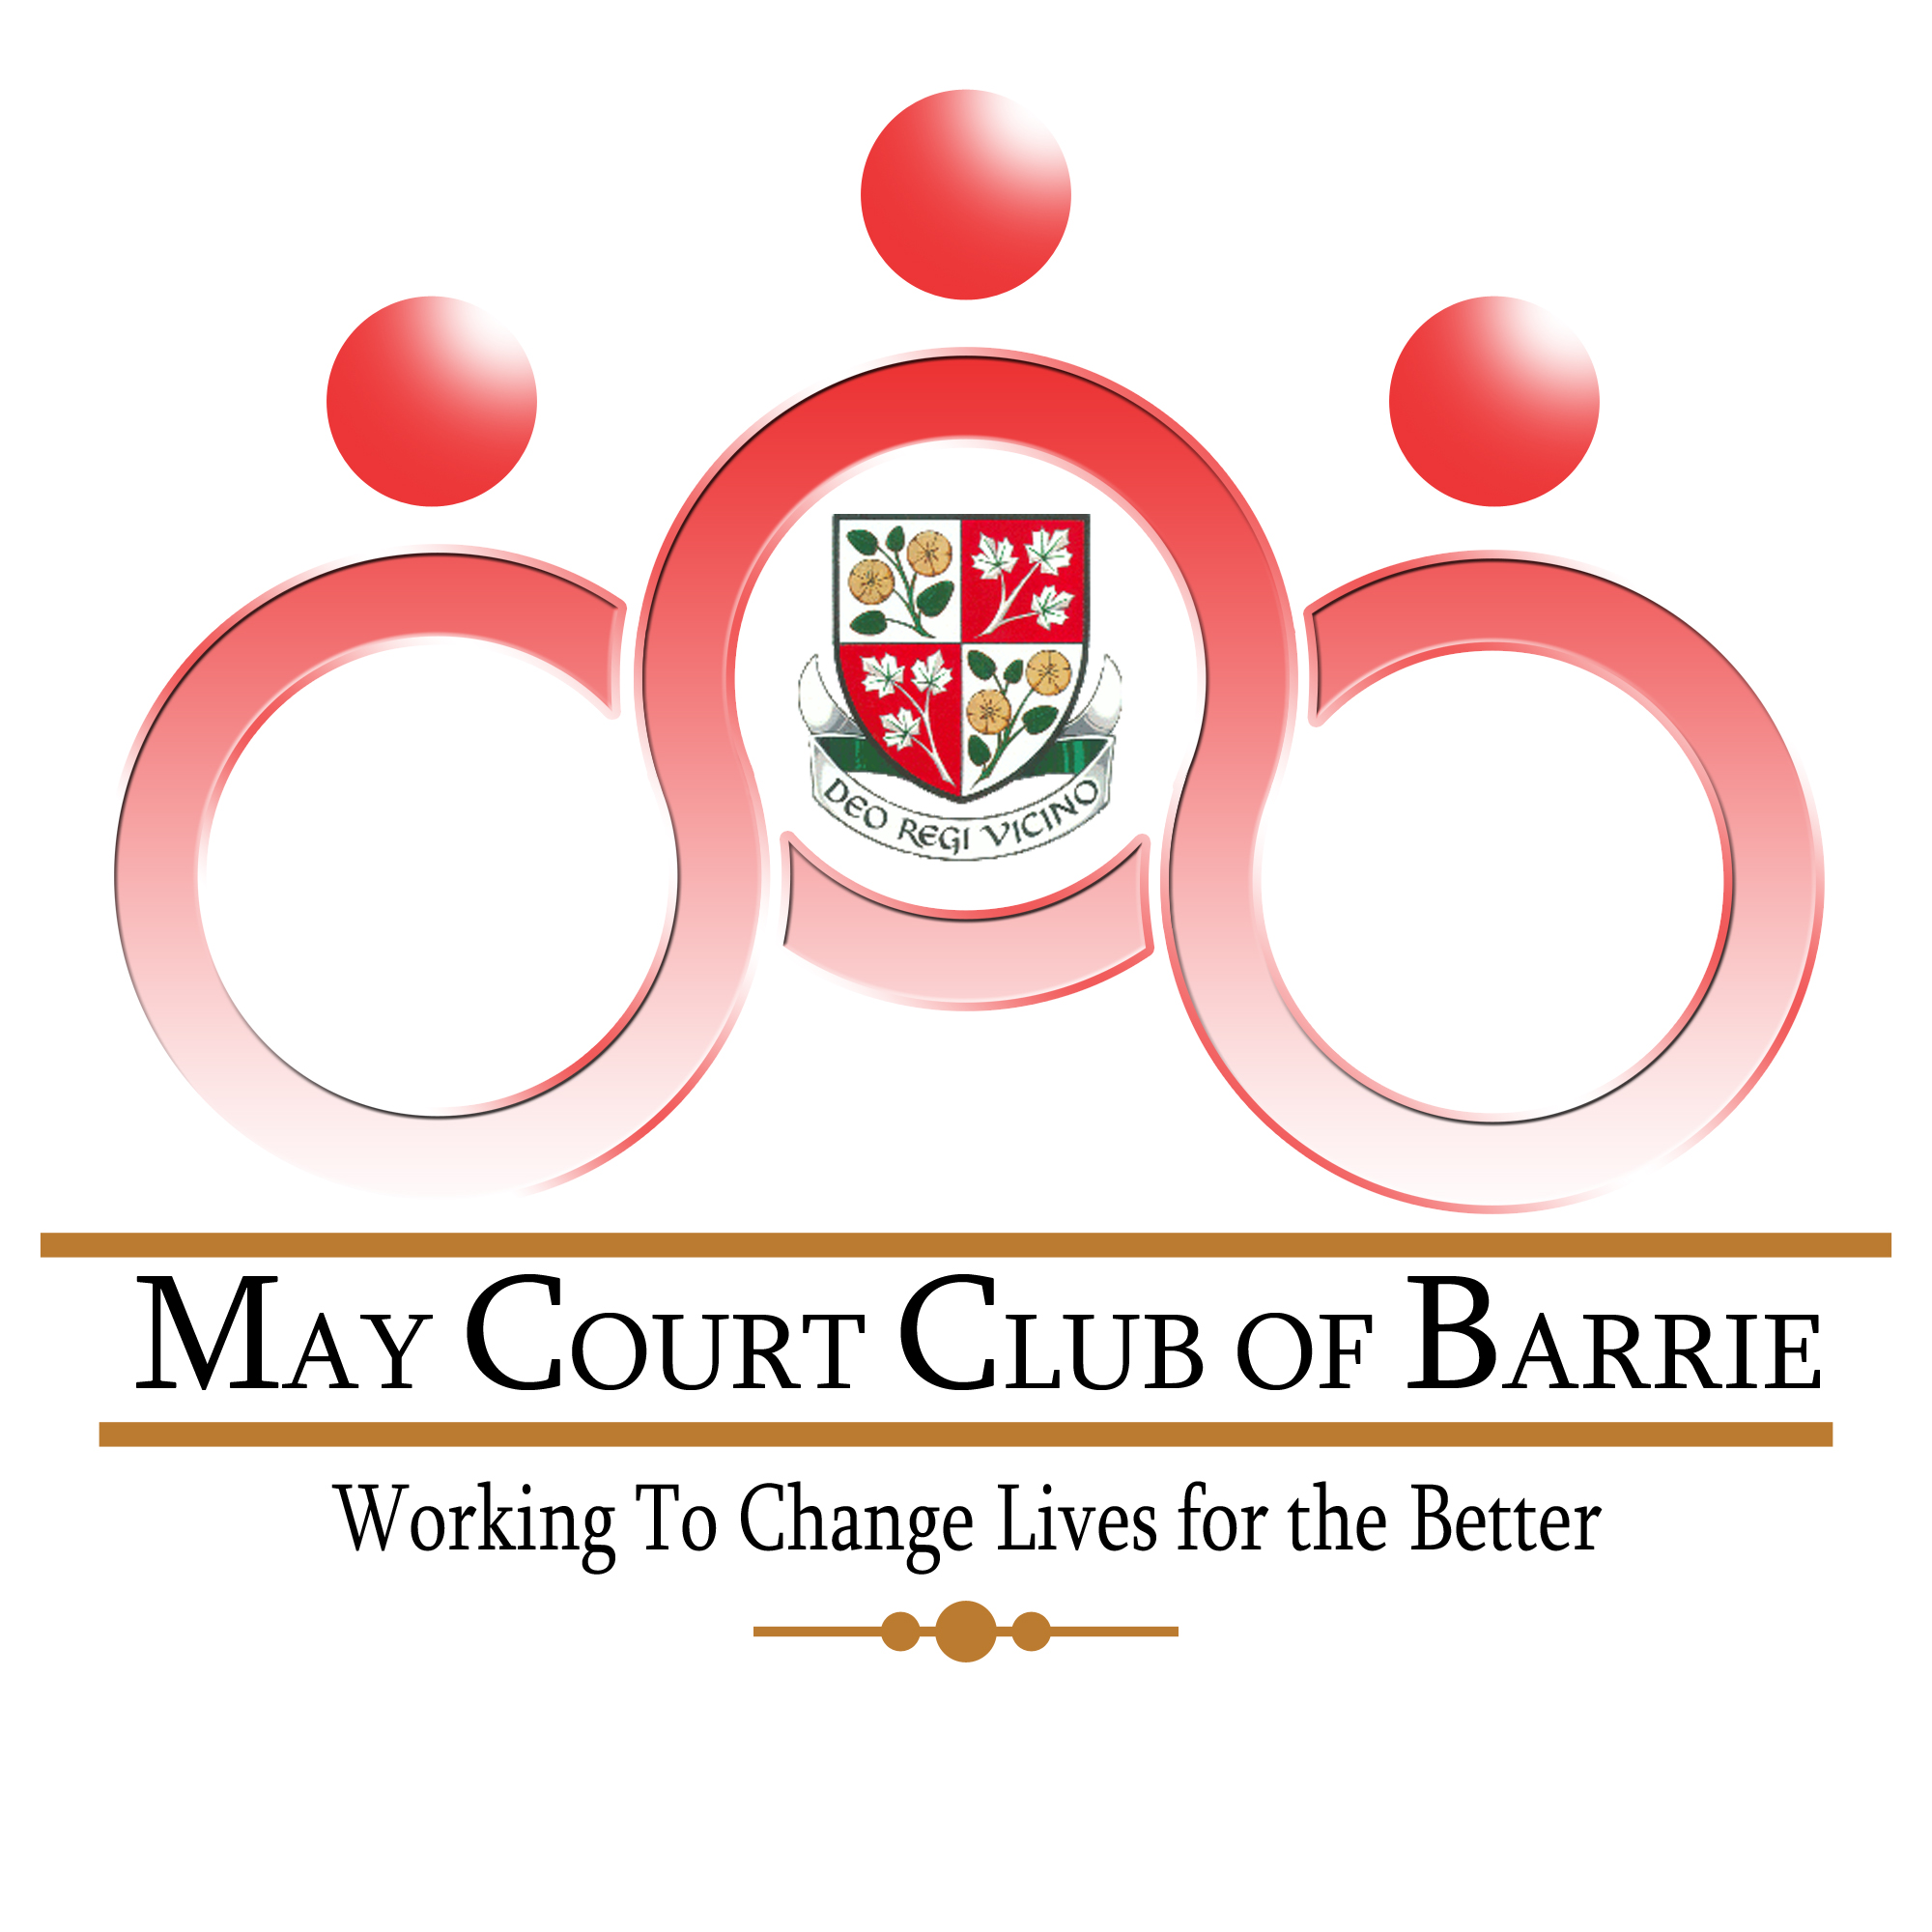 Logo Design by Ervin Beñez - Entry No. 42 in the Logo Design Contest New Logo Design for MAY COURT CLUB OF BARRIE.